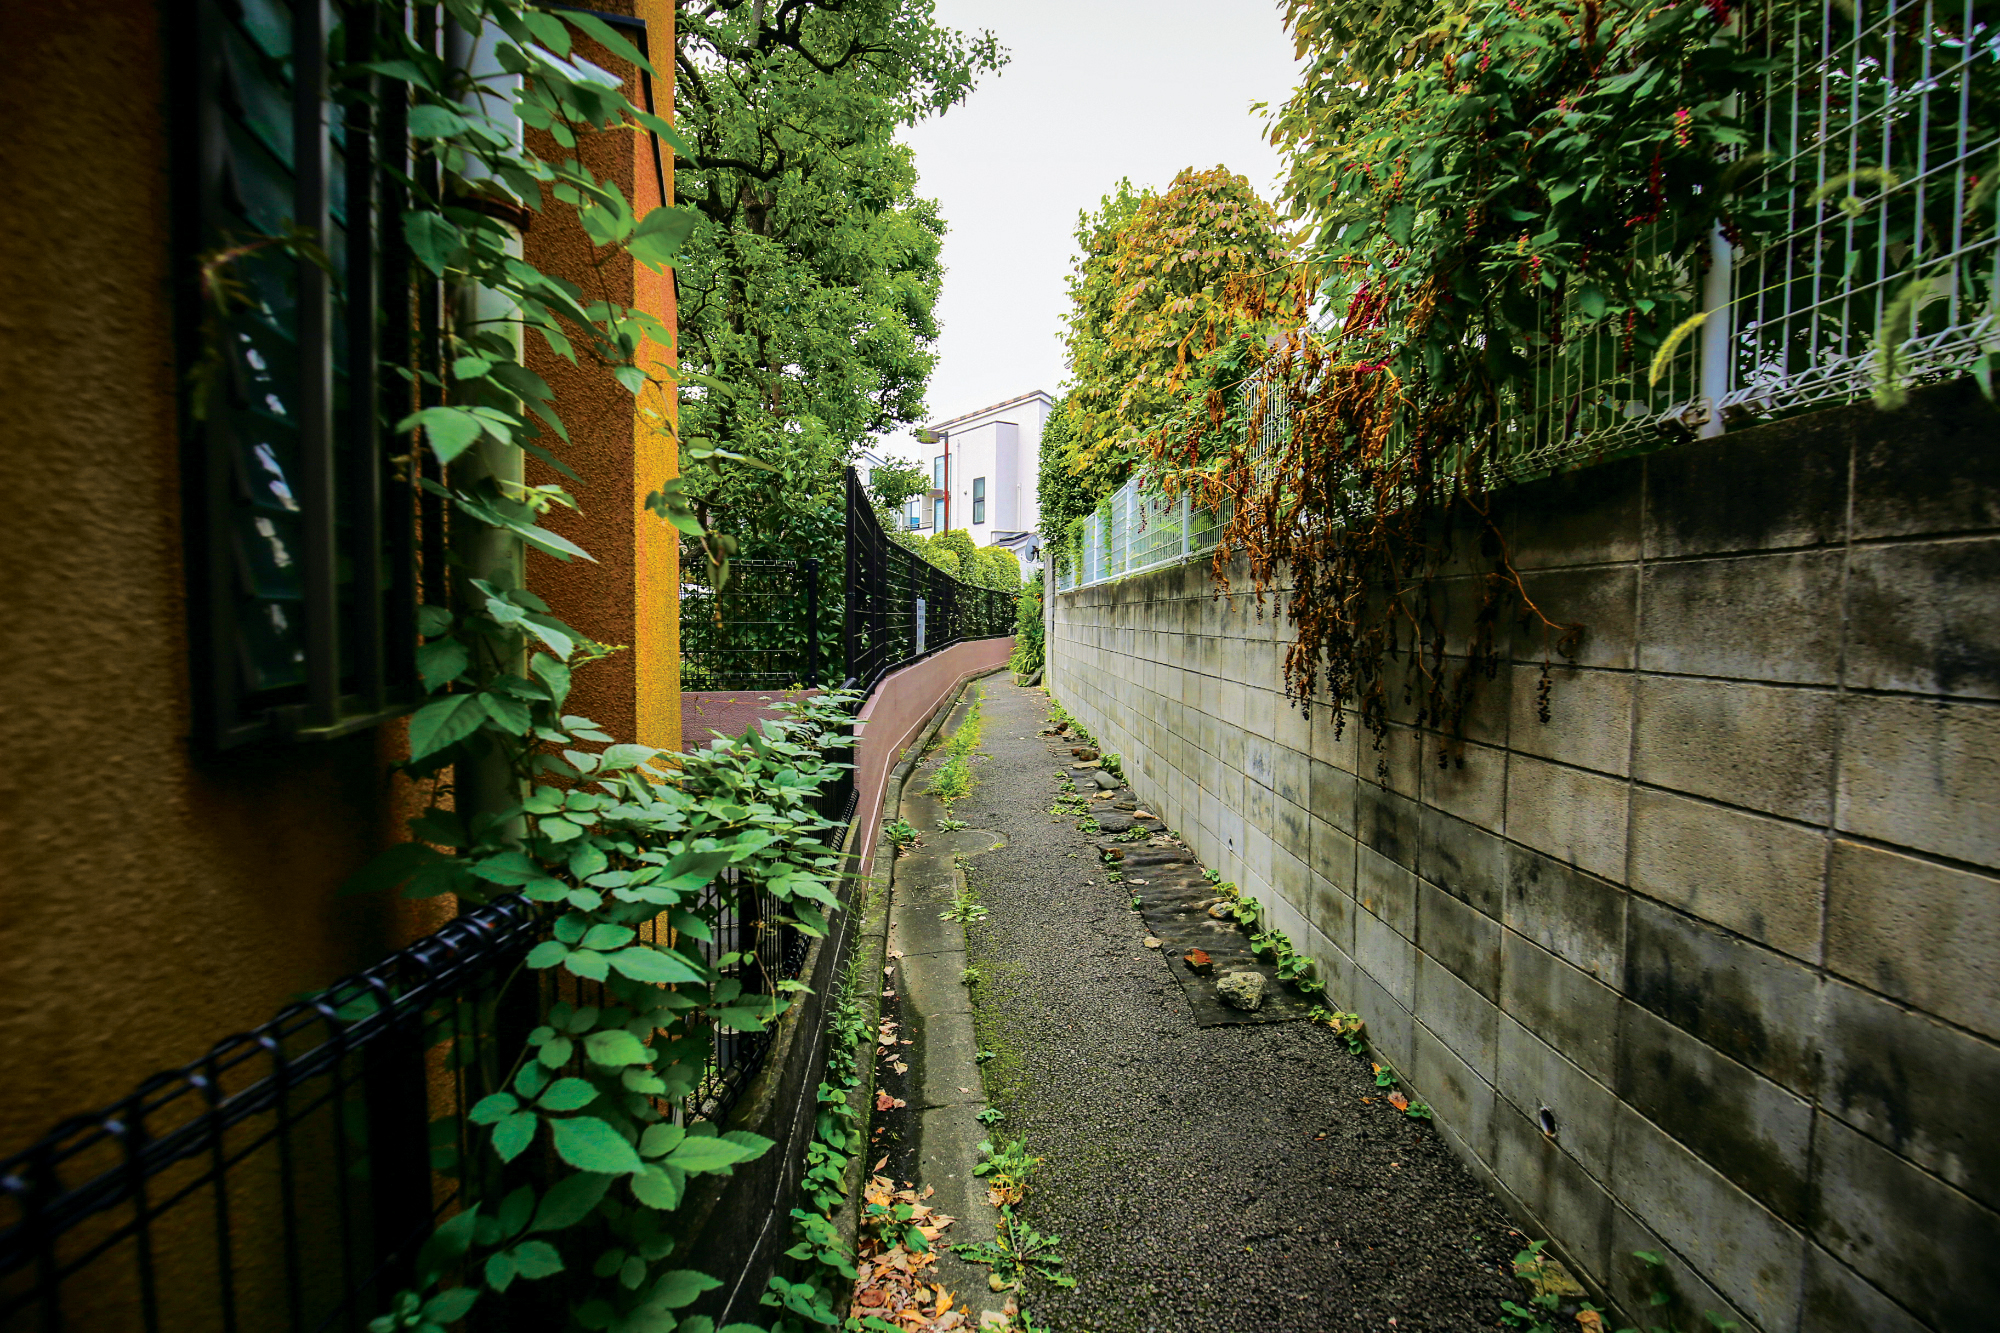 Walking through the back streets of Tokyo, Japan, surrounded by homes and overgrown plants.